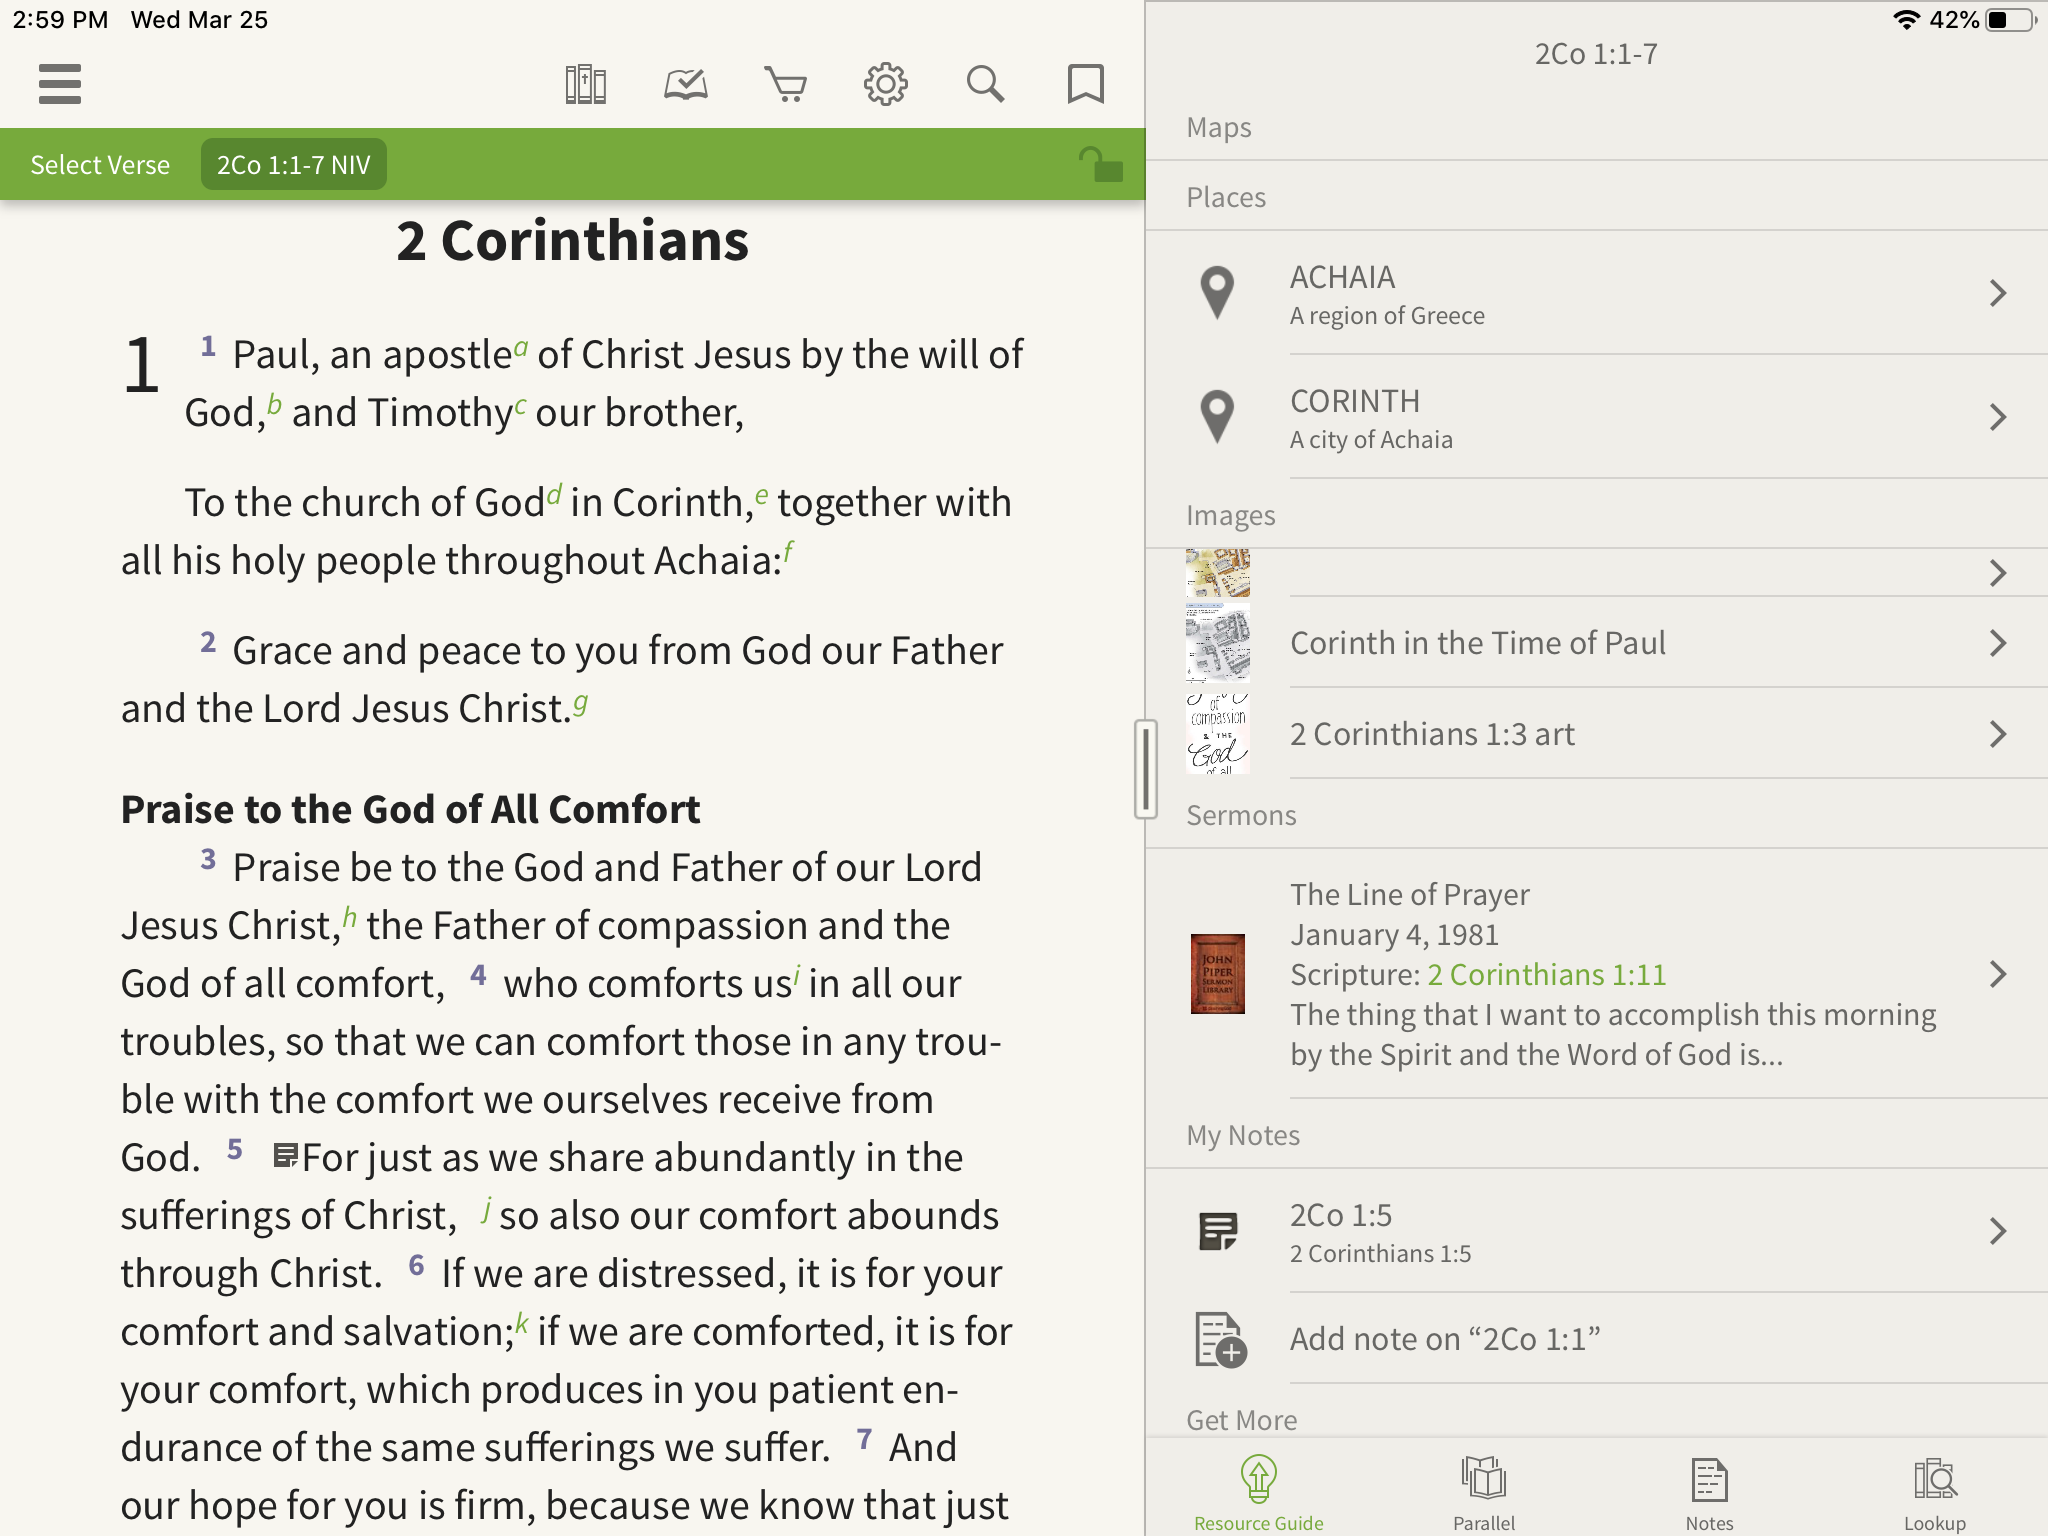 sermons in the olive tree resource guide